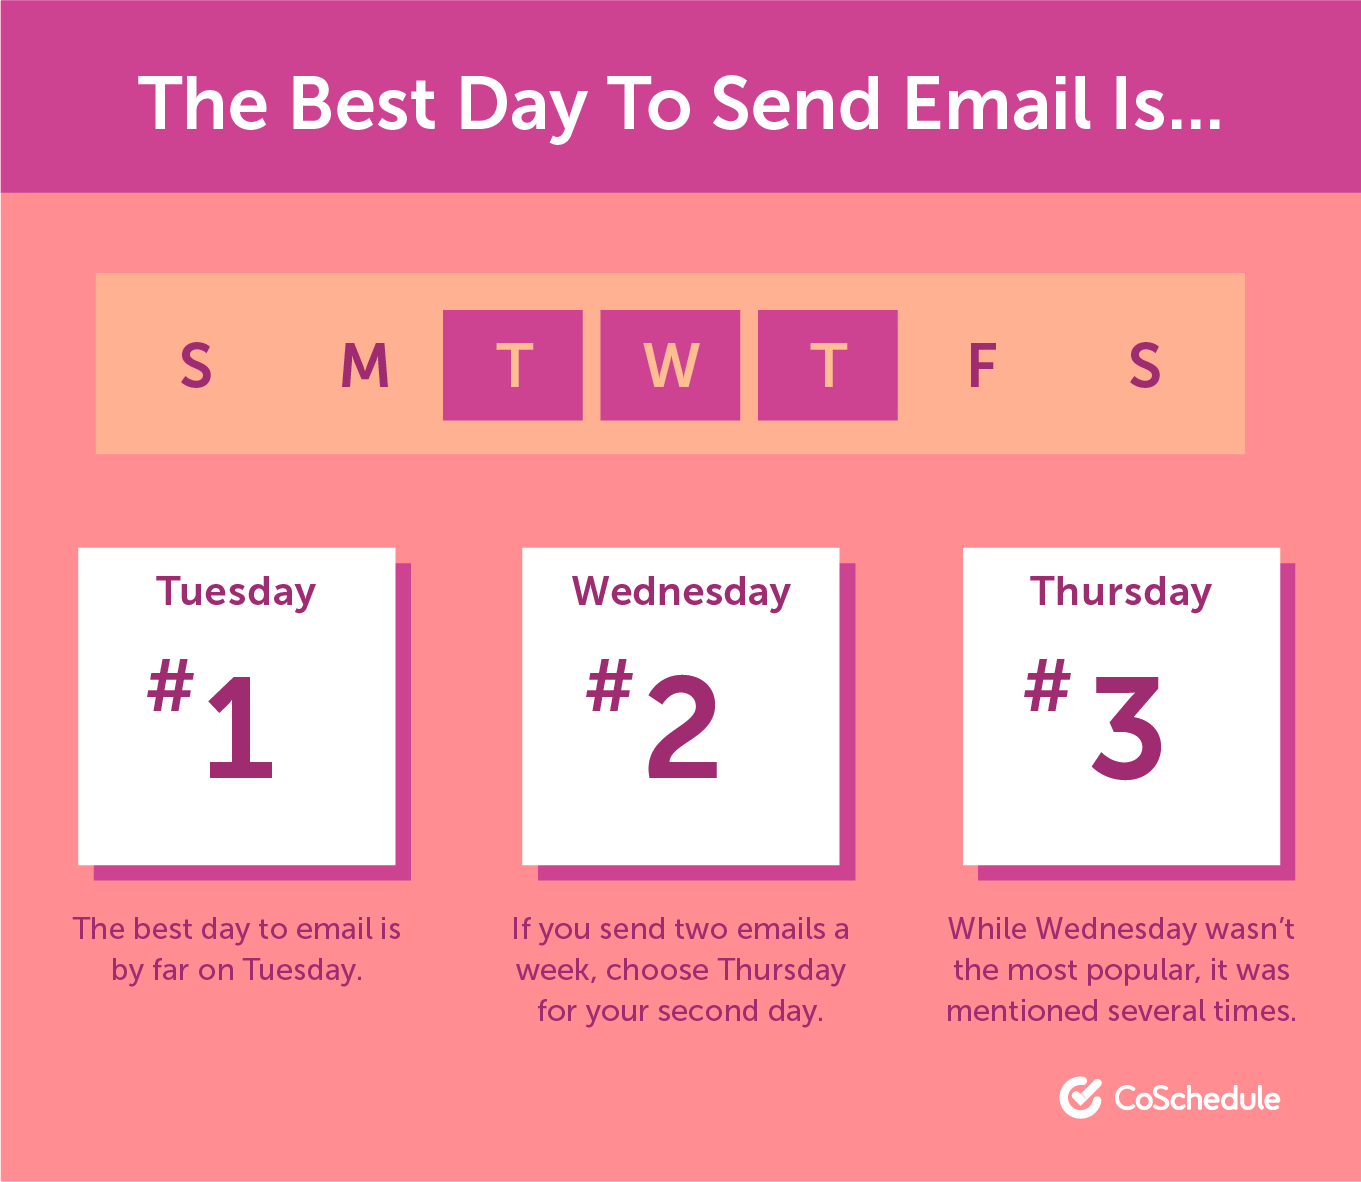 The best day to send an email